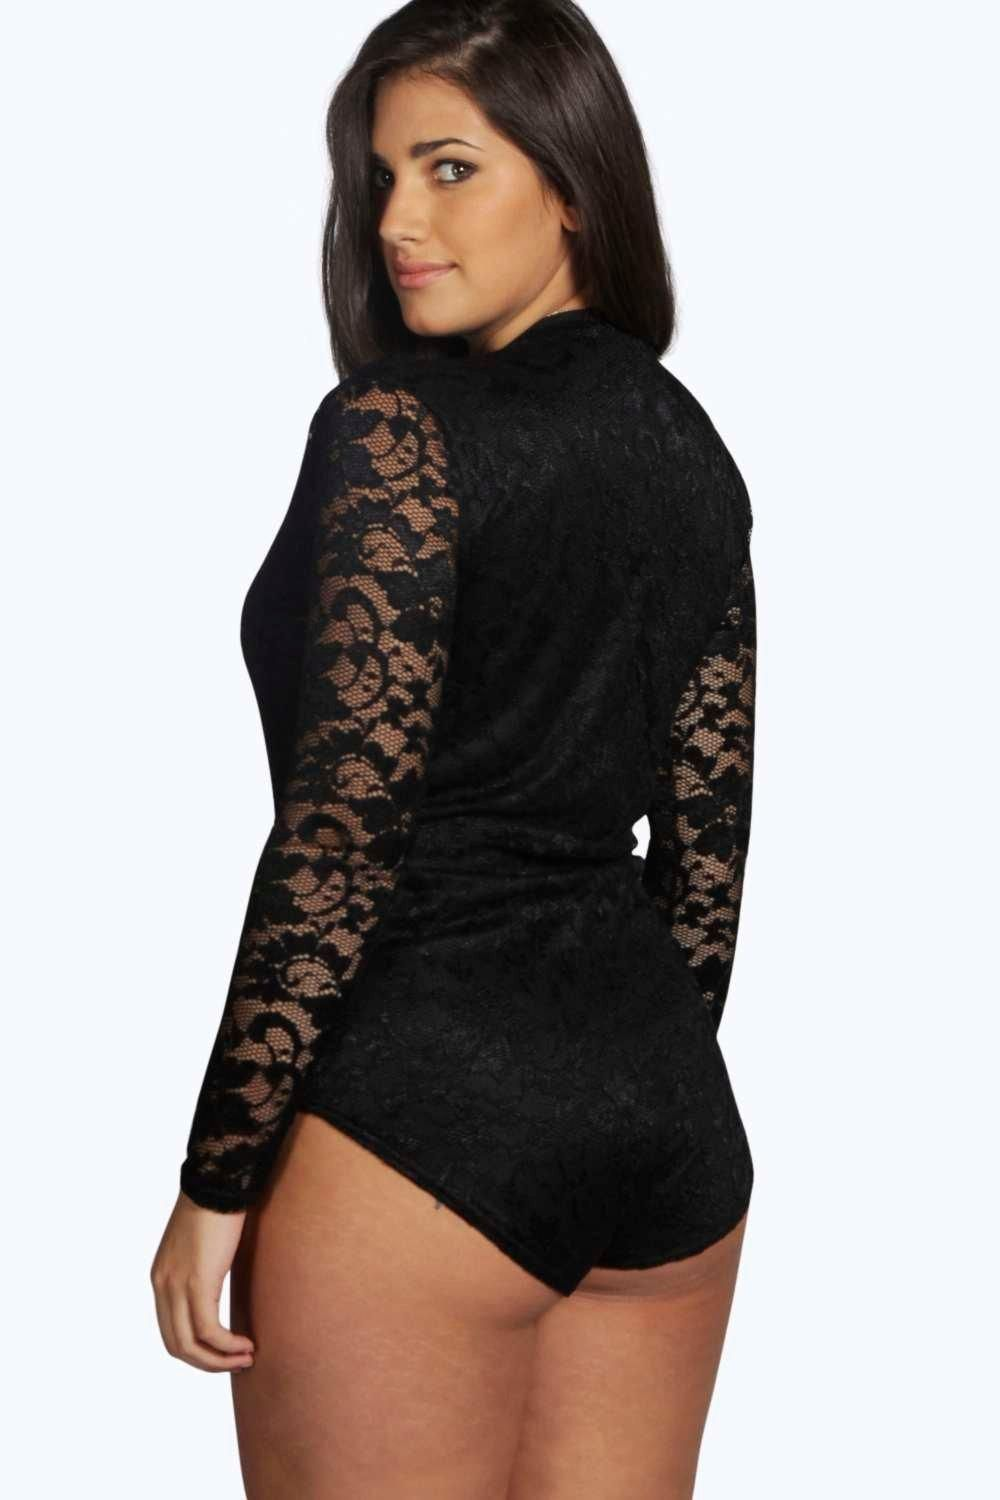 7dad908db boohoo.com plus size bodysuit ootd